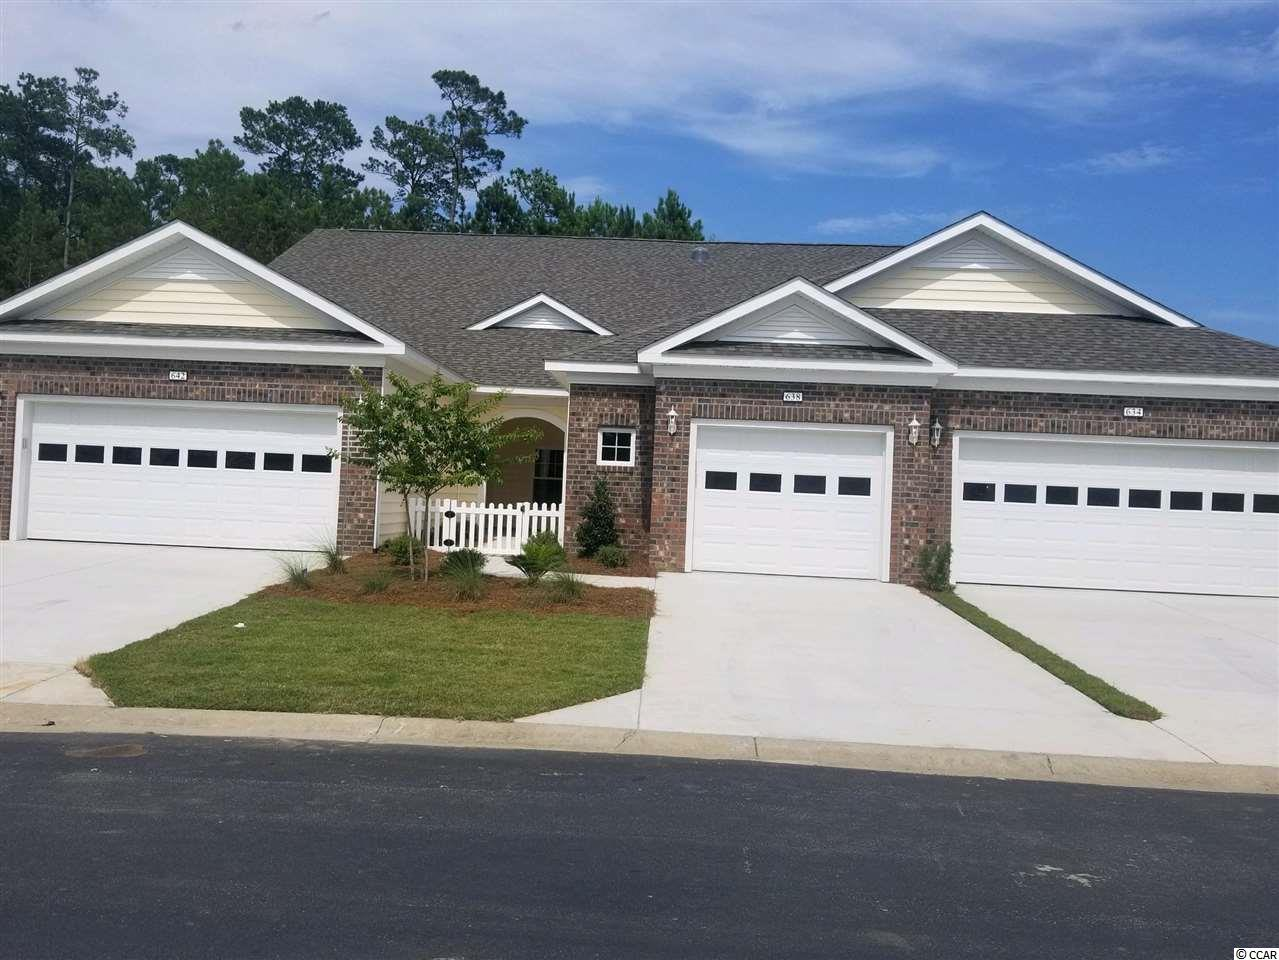 Townhouse MLS:1707871 Johns Bay South at Prince Creek  Lot 73 Misty Hammock Lane Murrells Inlet SC